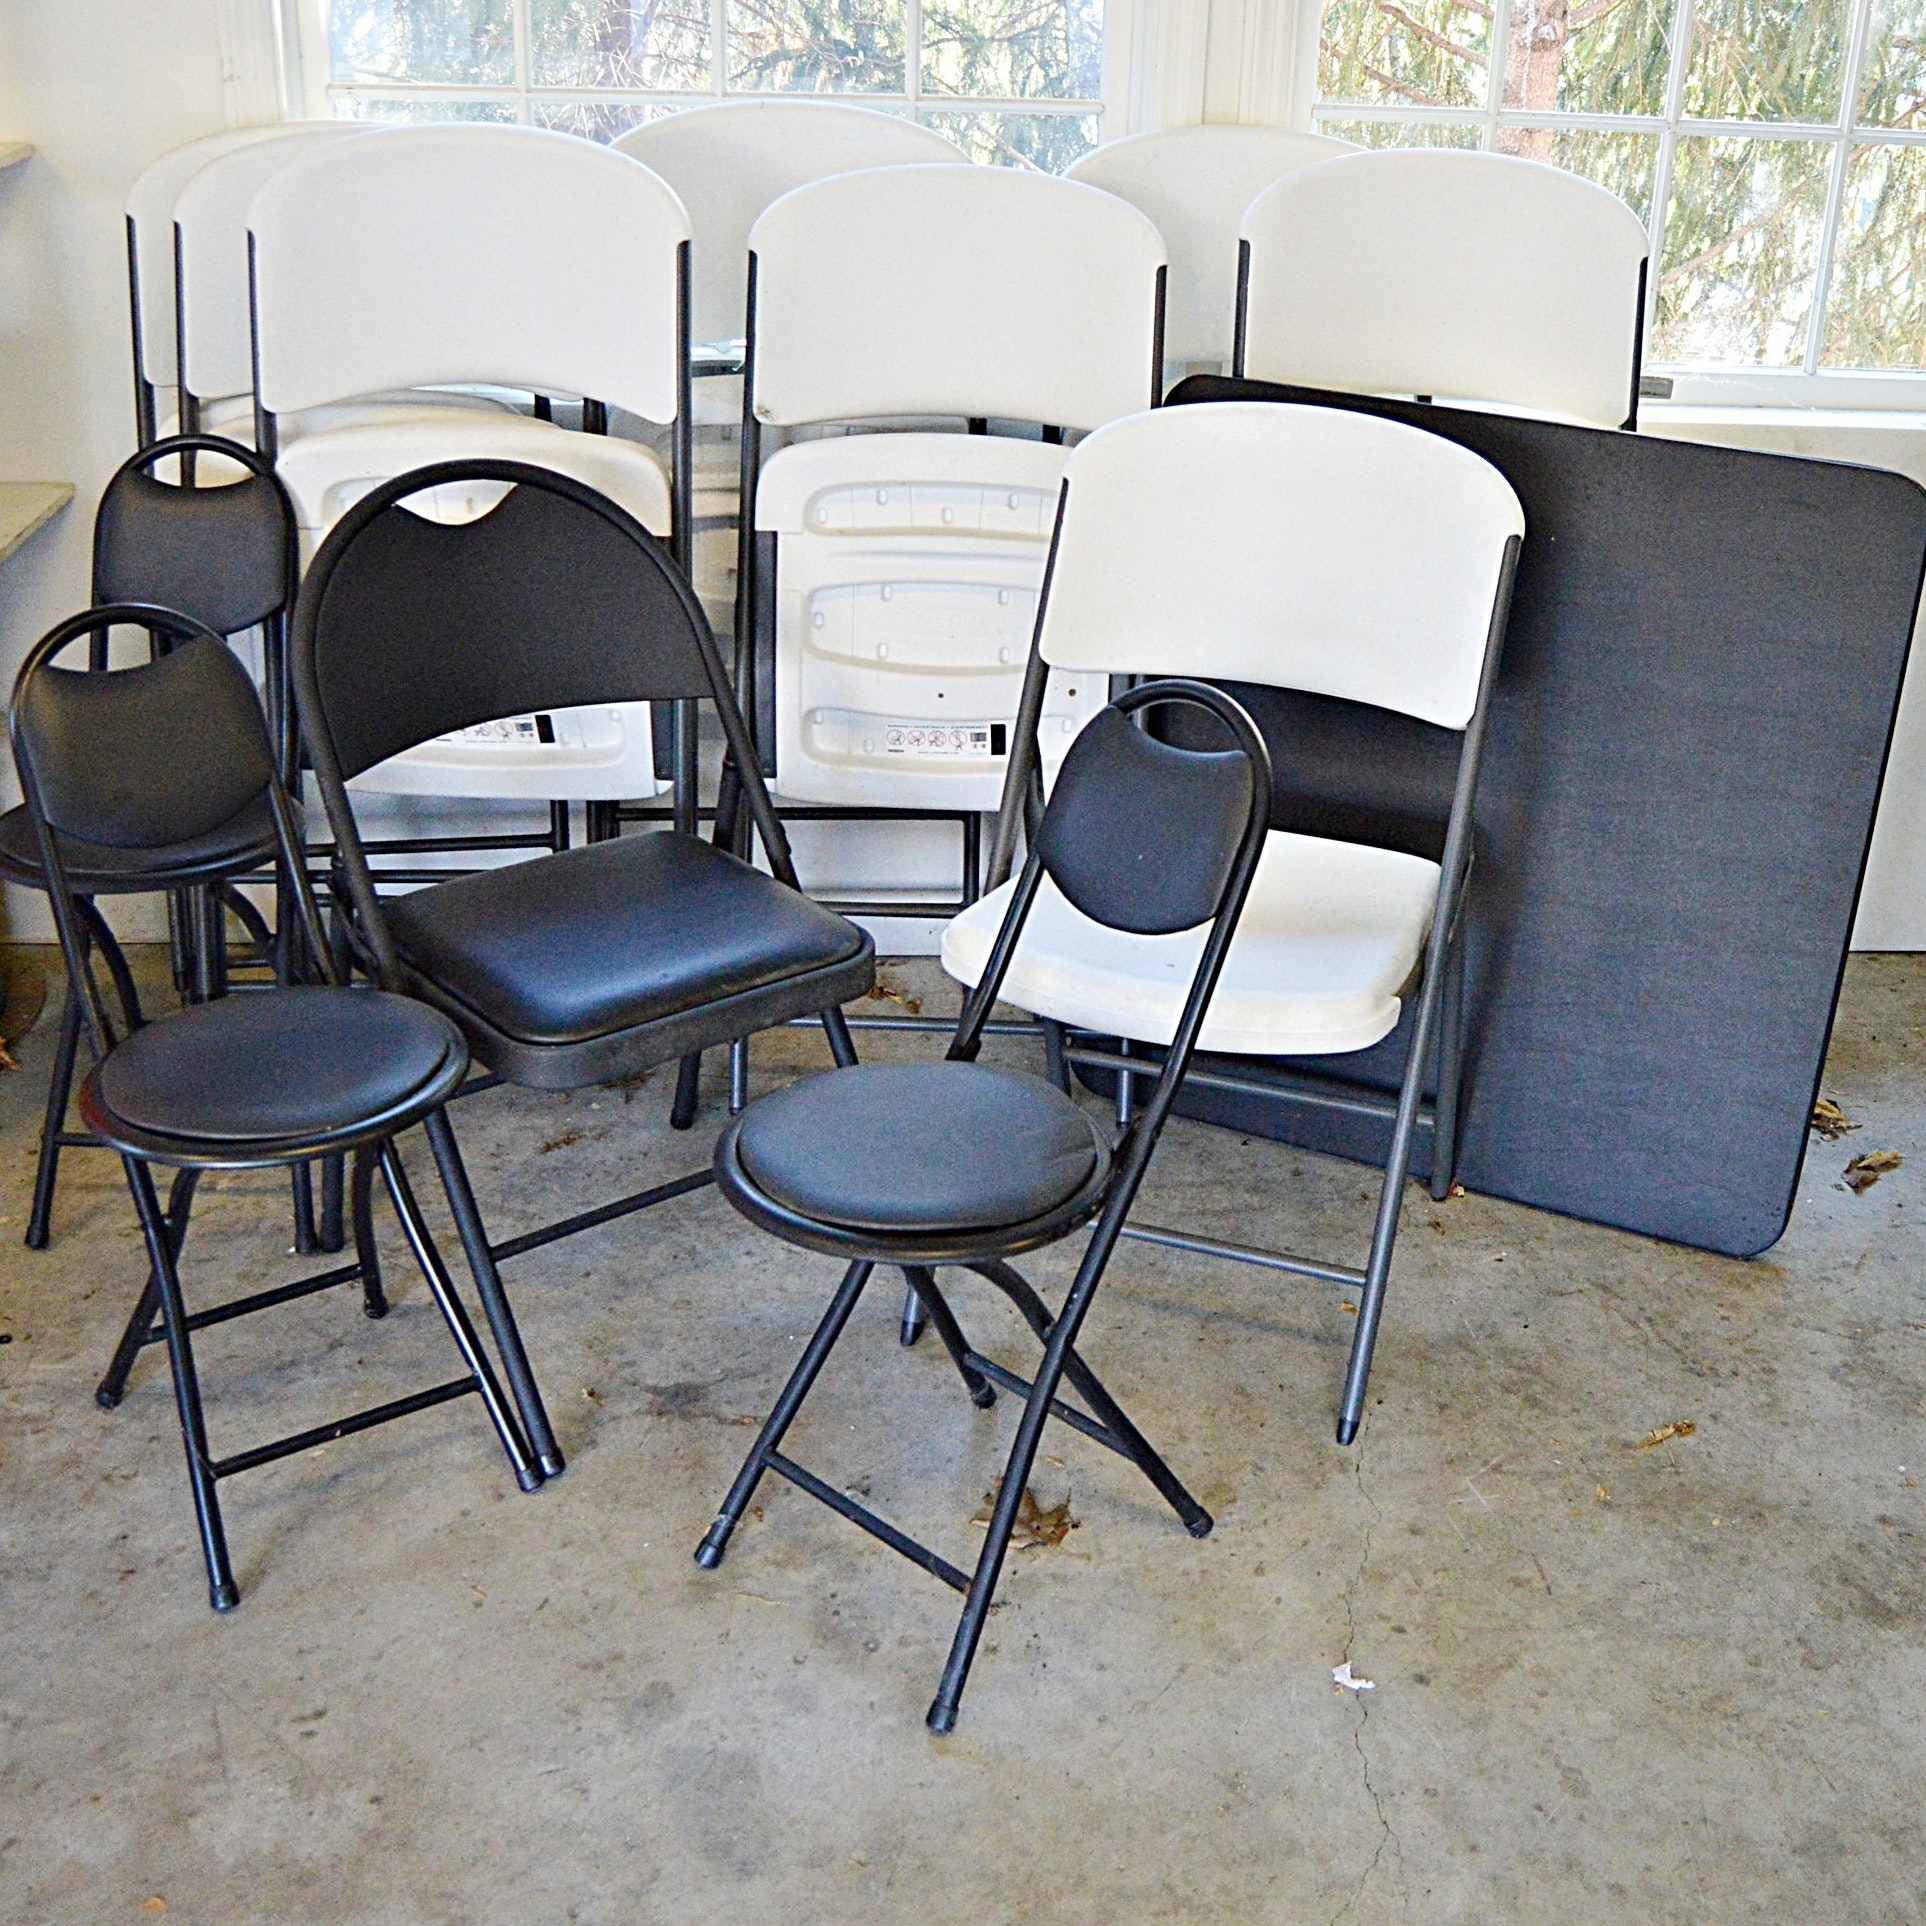 Folding Chair Sets, Card Table and Long Folding Table